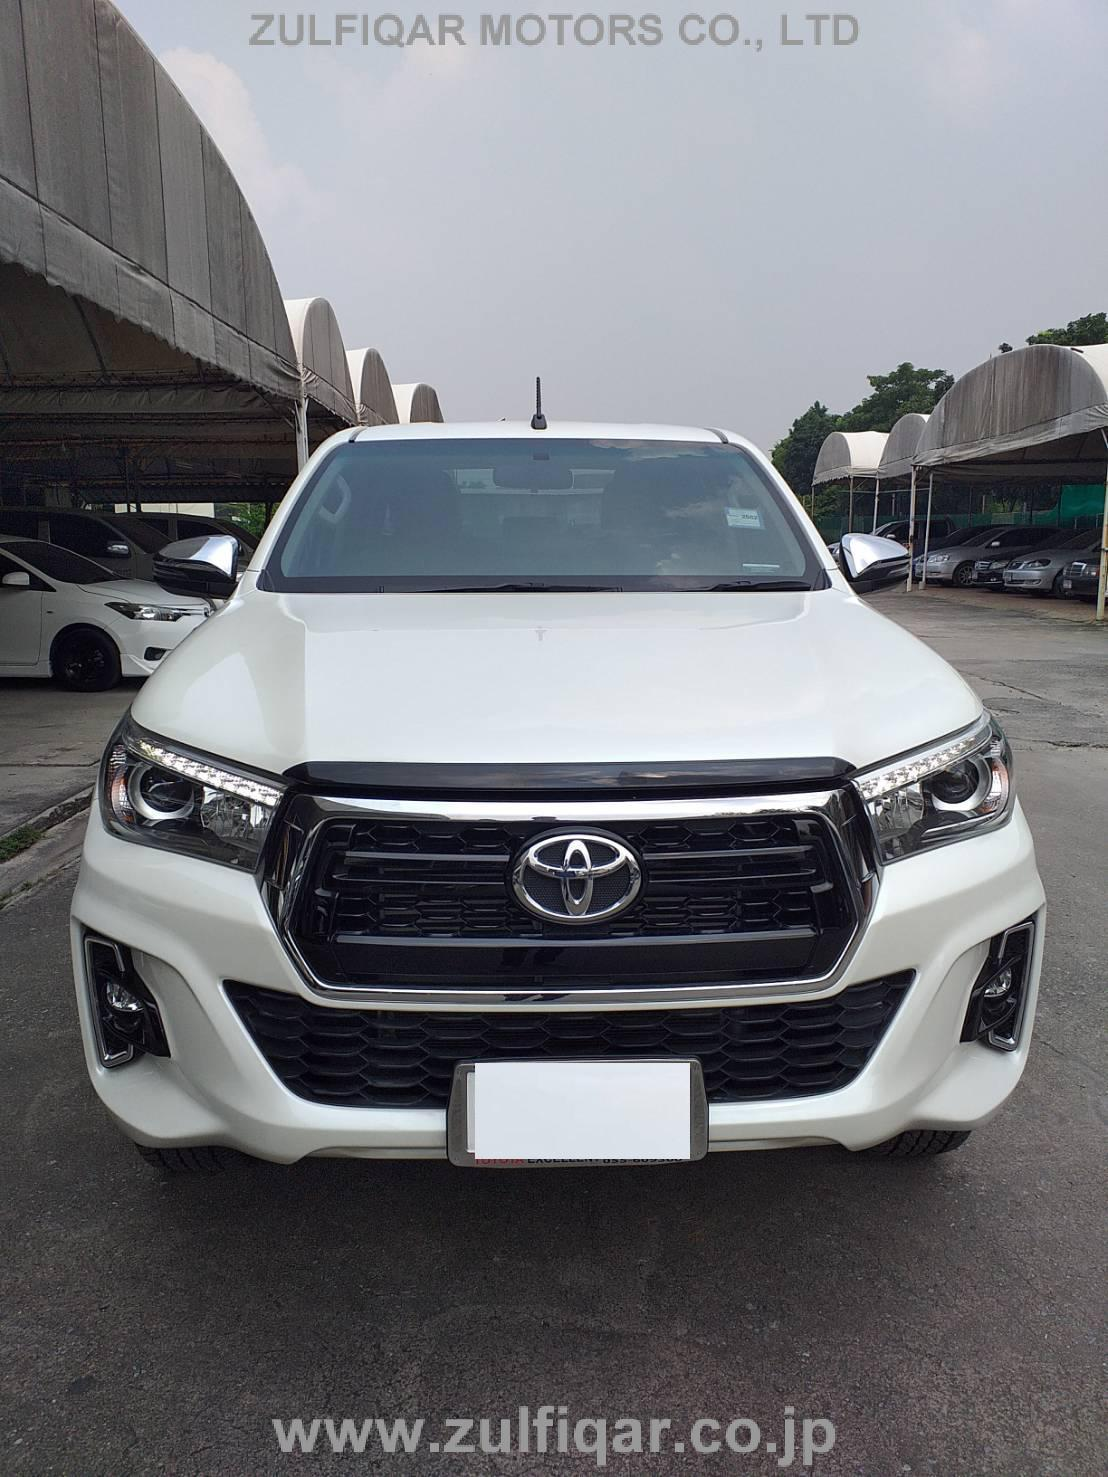 TOYOTA HILUX PICK UP 2017 Image 1